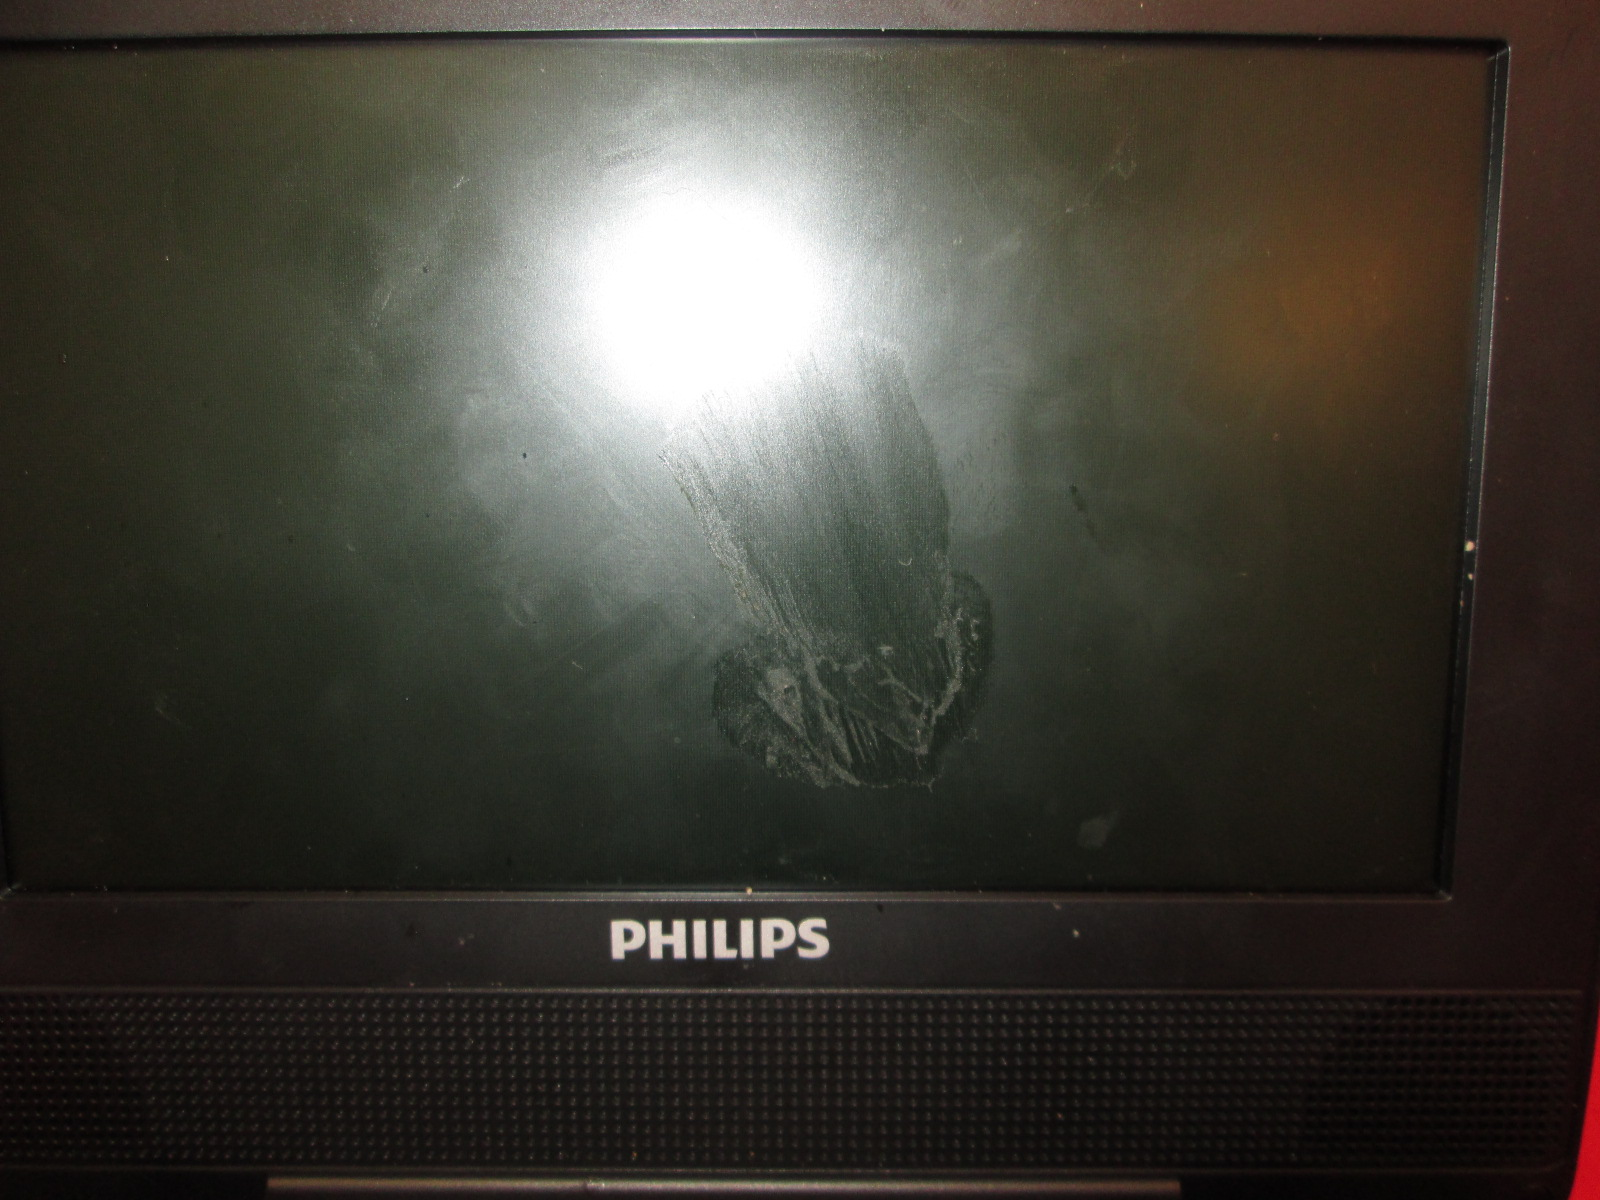 philips portable dvd player dcp750 37 manual